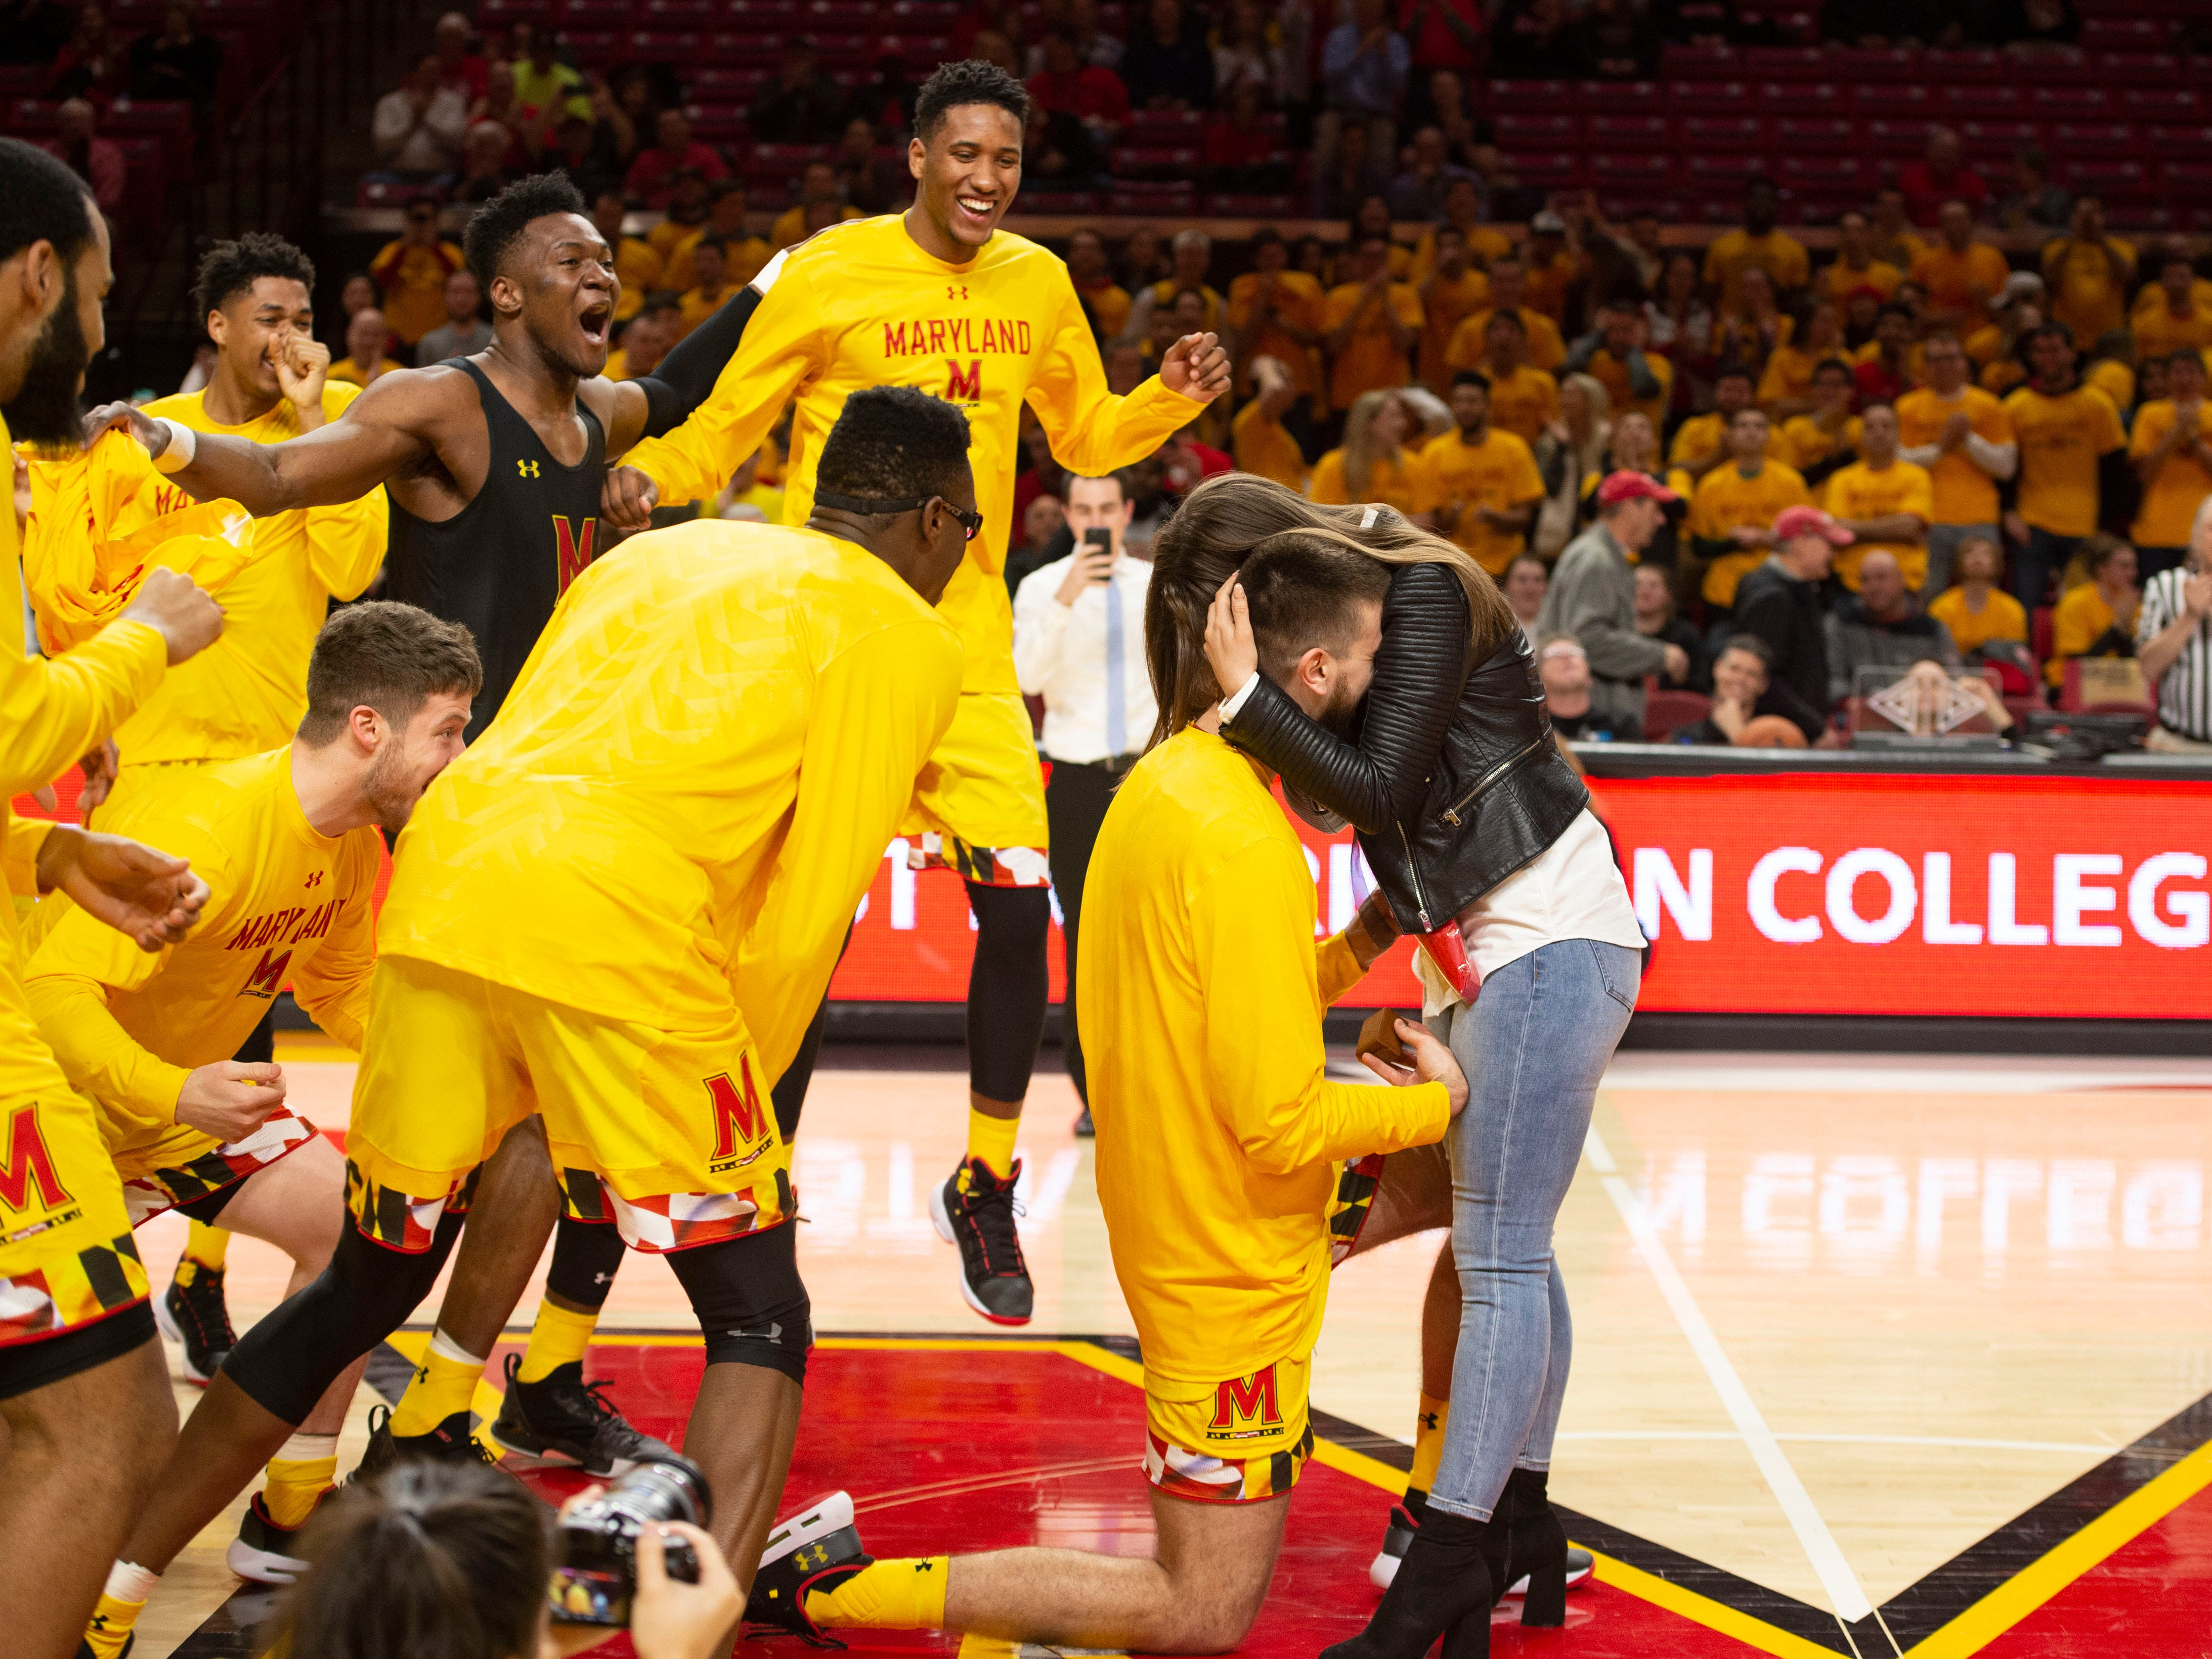 March 8: The Maryland Terrapins celebrate after forward Ivan Bender proposed to Andrea Knezevic on the court before the game against the Minnesota Golden Gophers at XFINITY Center.